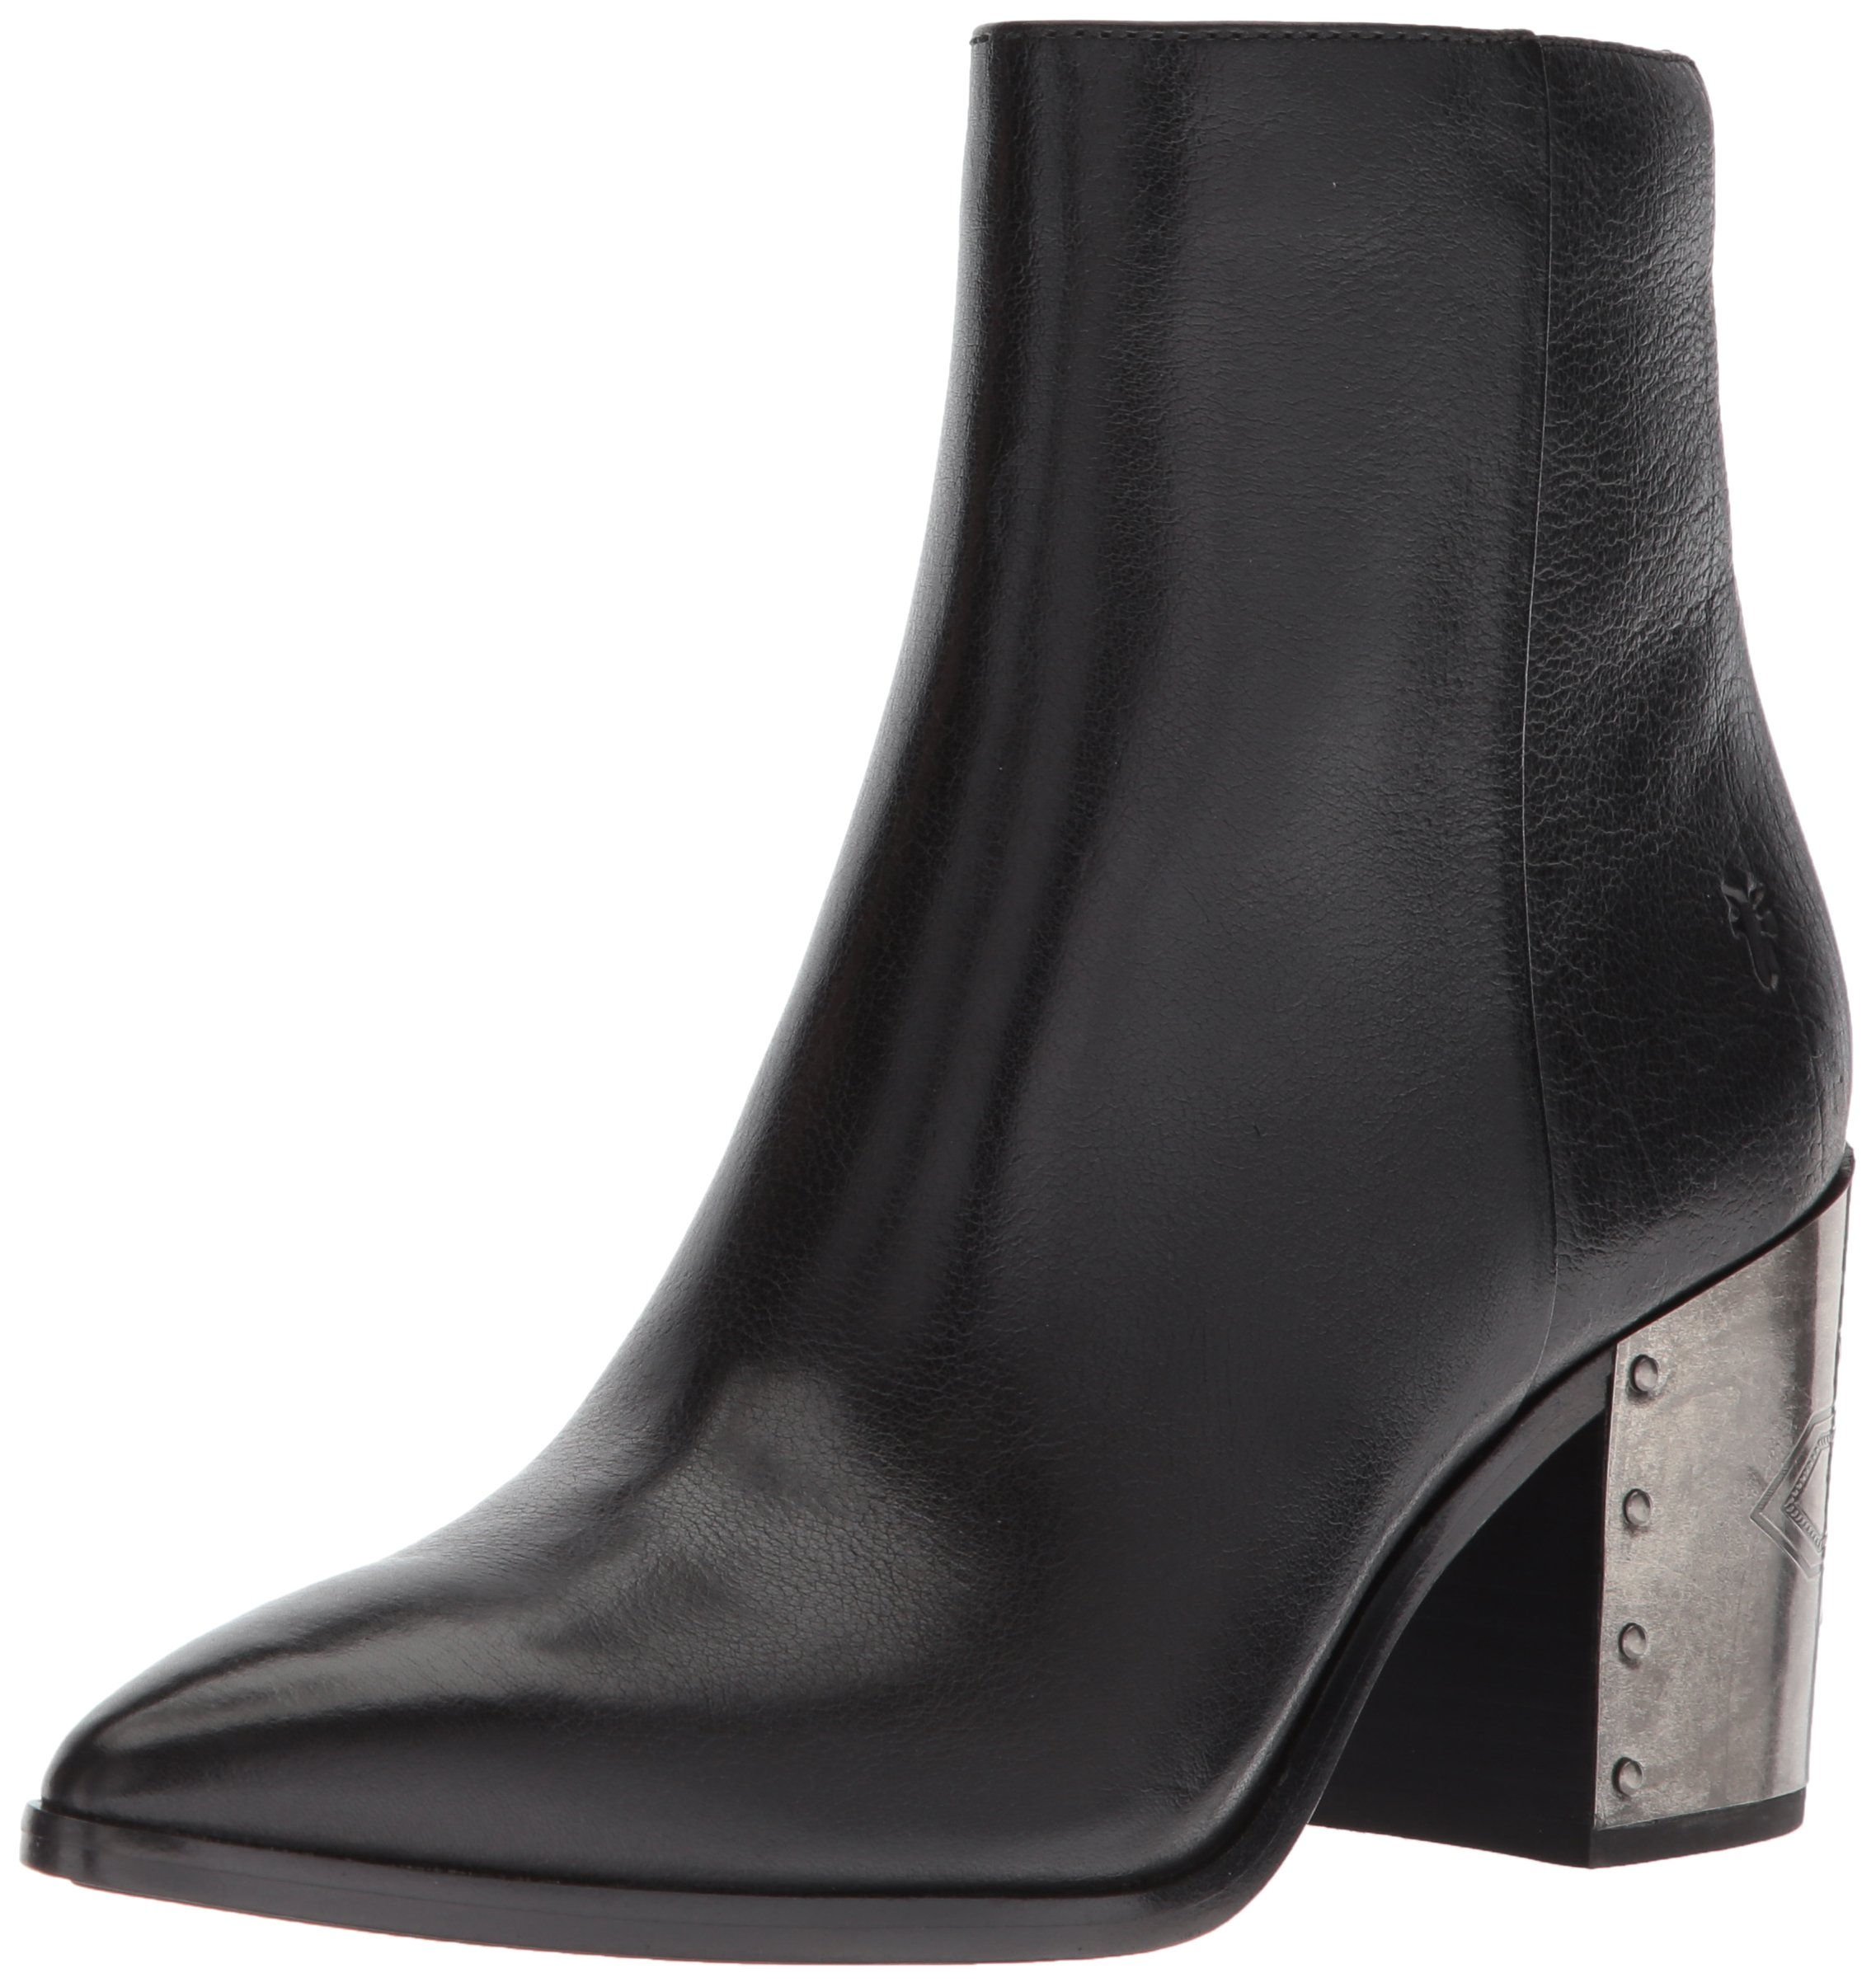 FRYE Women's Flynn Omaja Short Inside Zip Ankle Boot, Black, 7.5 M US